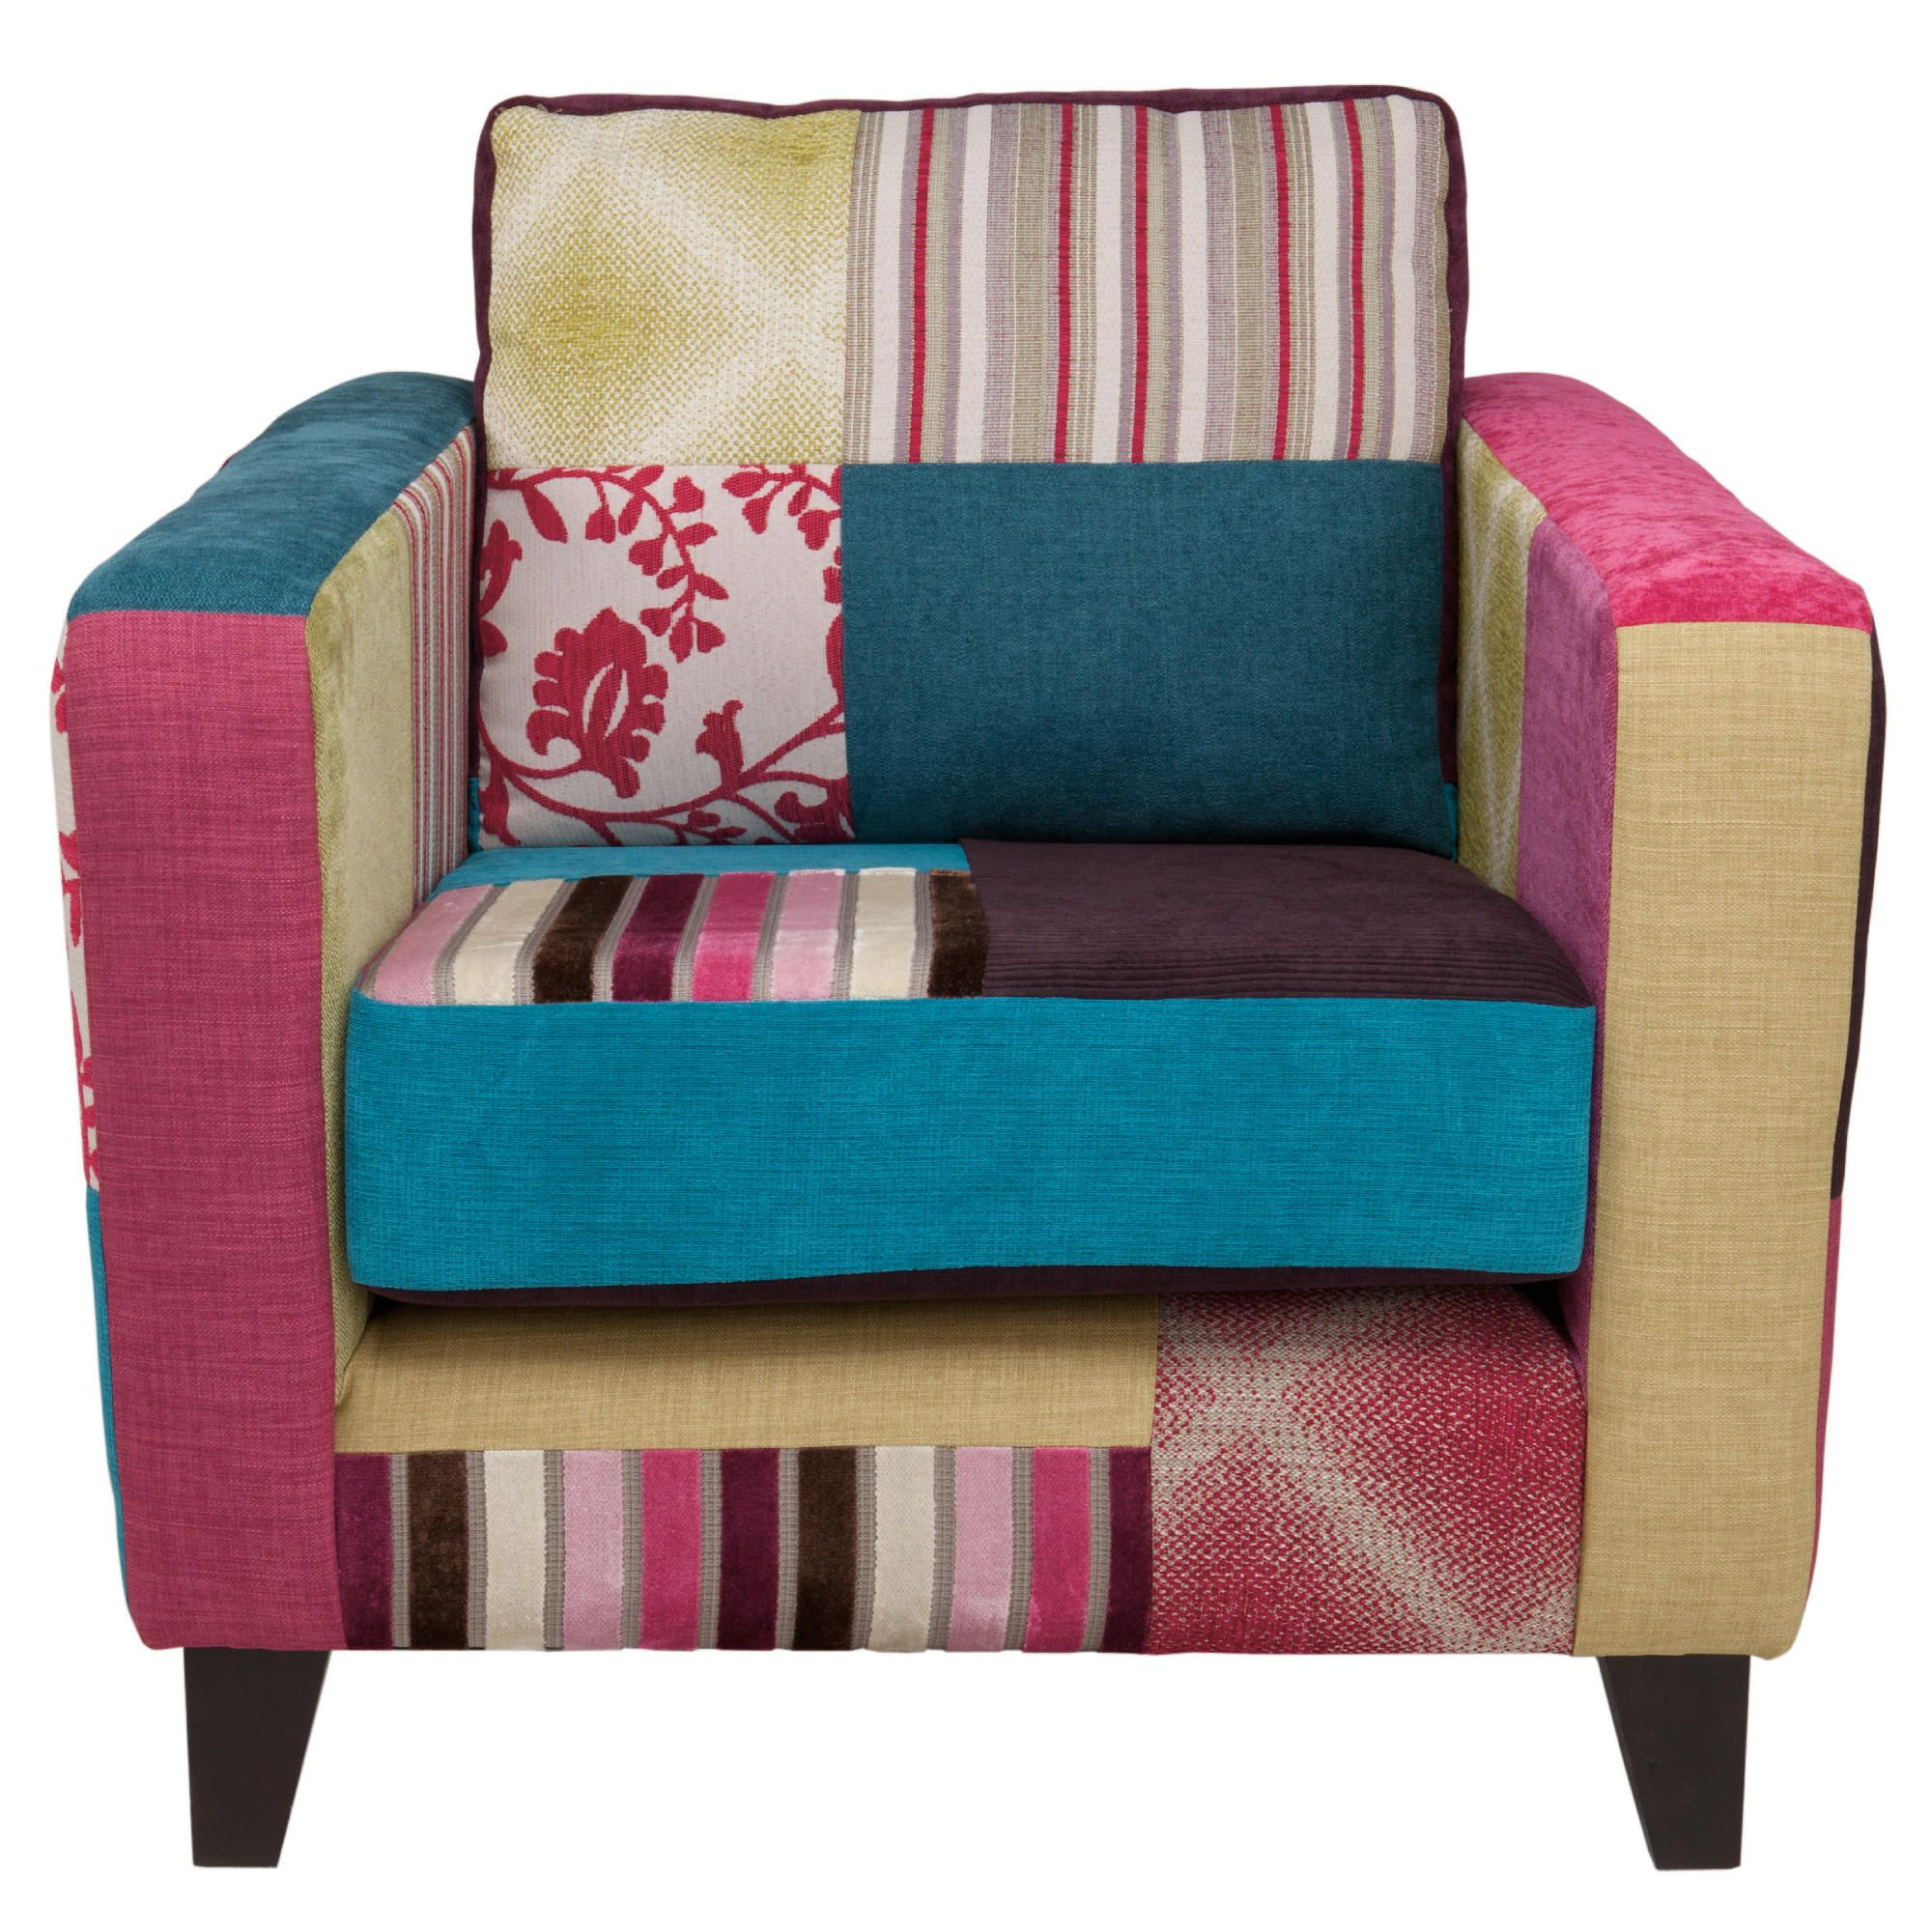 Patchwork chair at Tesco Direct